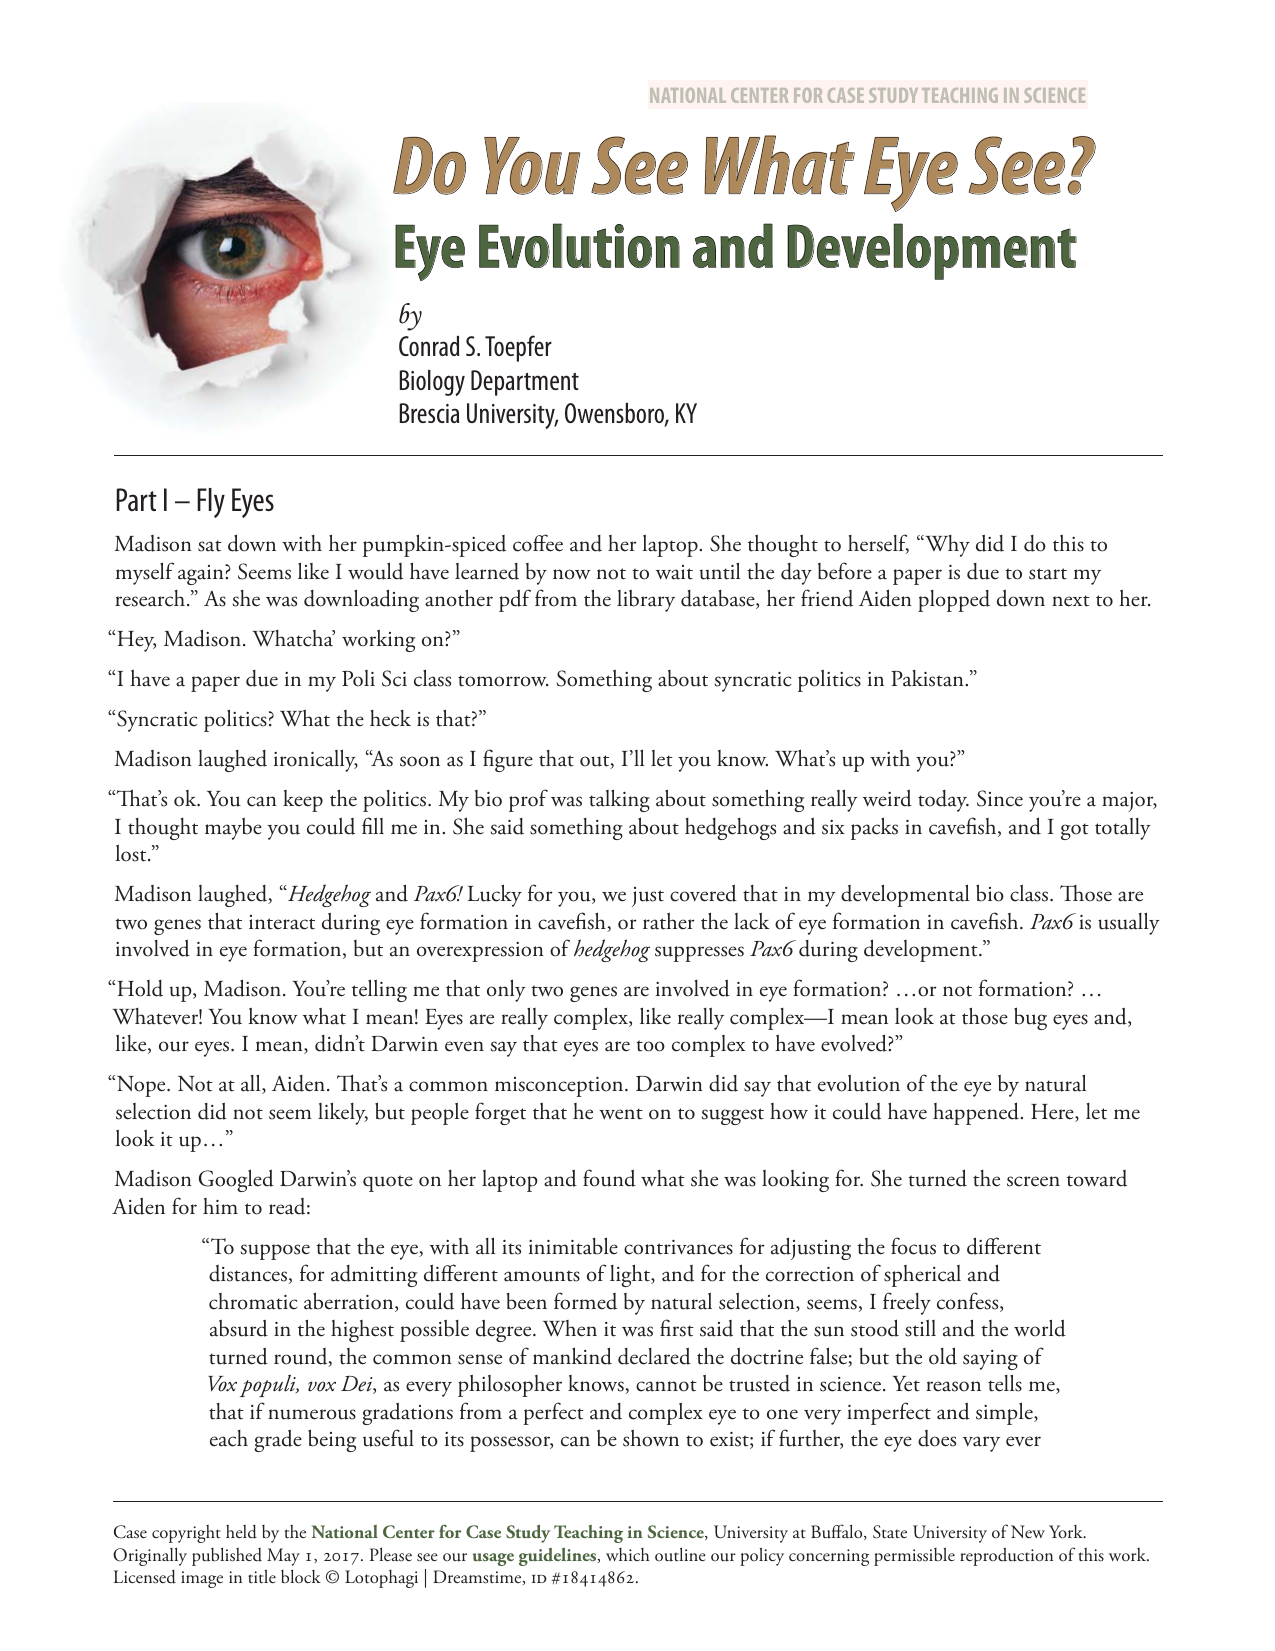 Do You See What Eye See? - National Center for Case Study